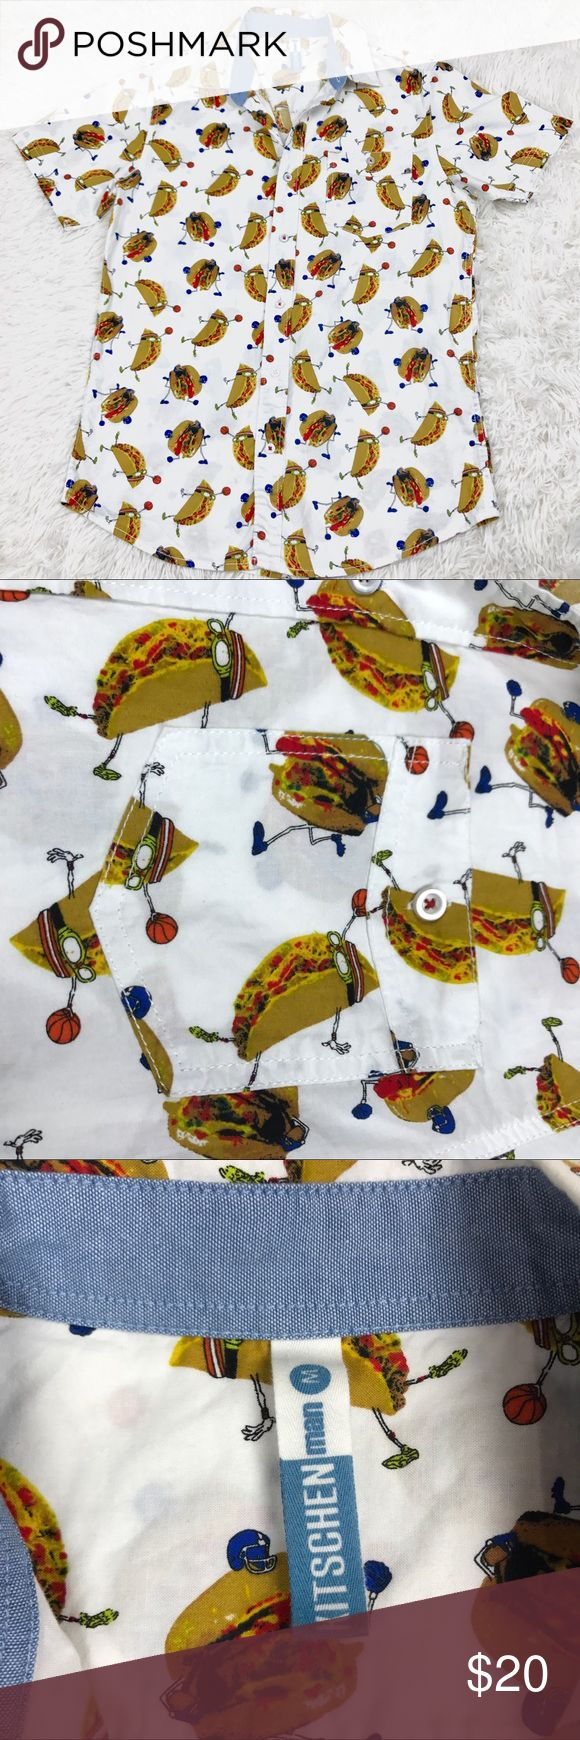 Taco Hamburger Football Basketball Button Down Men's Taco Hamburger Football Basketball Novelty Button Down  Hipster   Preowned  Size- M  Sizes/Fit vary by Brand & Style   MEASUREMENTS • Bust - 20 inches • Length - 28.5 inches   All measurements are approximate and are taken with the item laying flat.   Please see all the pictures of the item   Message me with any questions before purchase    From a smoke & pet free home. Bin A1-15 Kitschen Man Shirts Casual Button Down Shirts